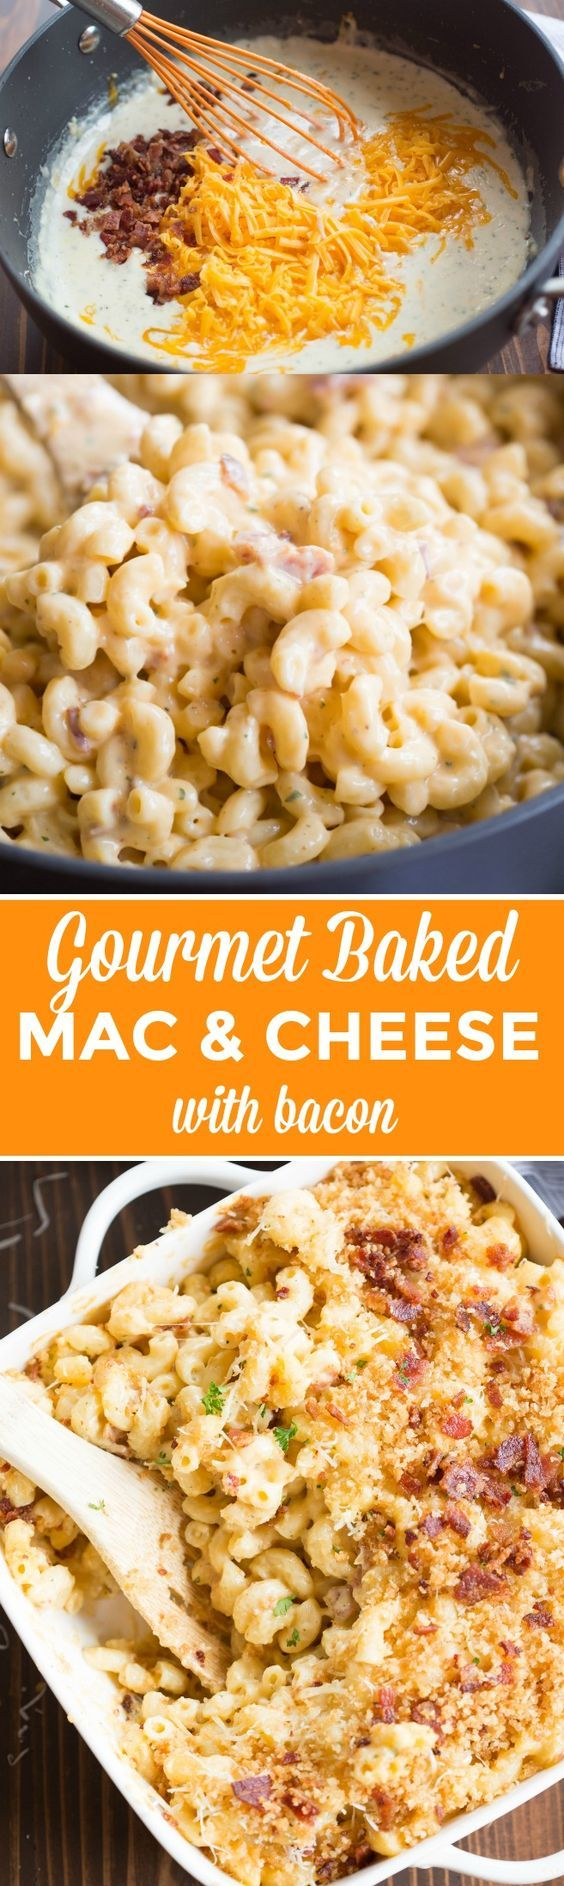 """This creamy, cheesy, GOURMET BAKED MAC AND CHEESE WITH BACON will outshine any mac and cheese you've tasted! It is """"restaurant-quality"""" AMAZING, and it couldn't be simpler to make.   tastesbetterfromscratch.com #ad @sugardalefoods"""